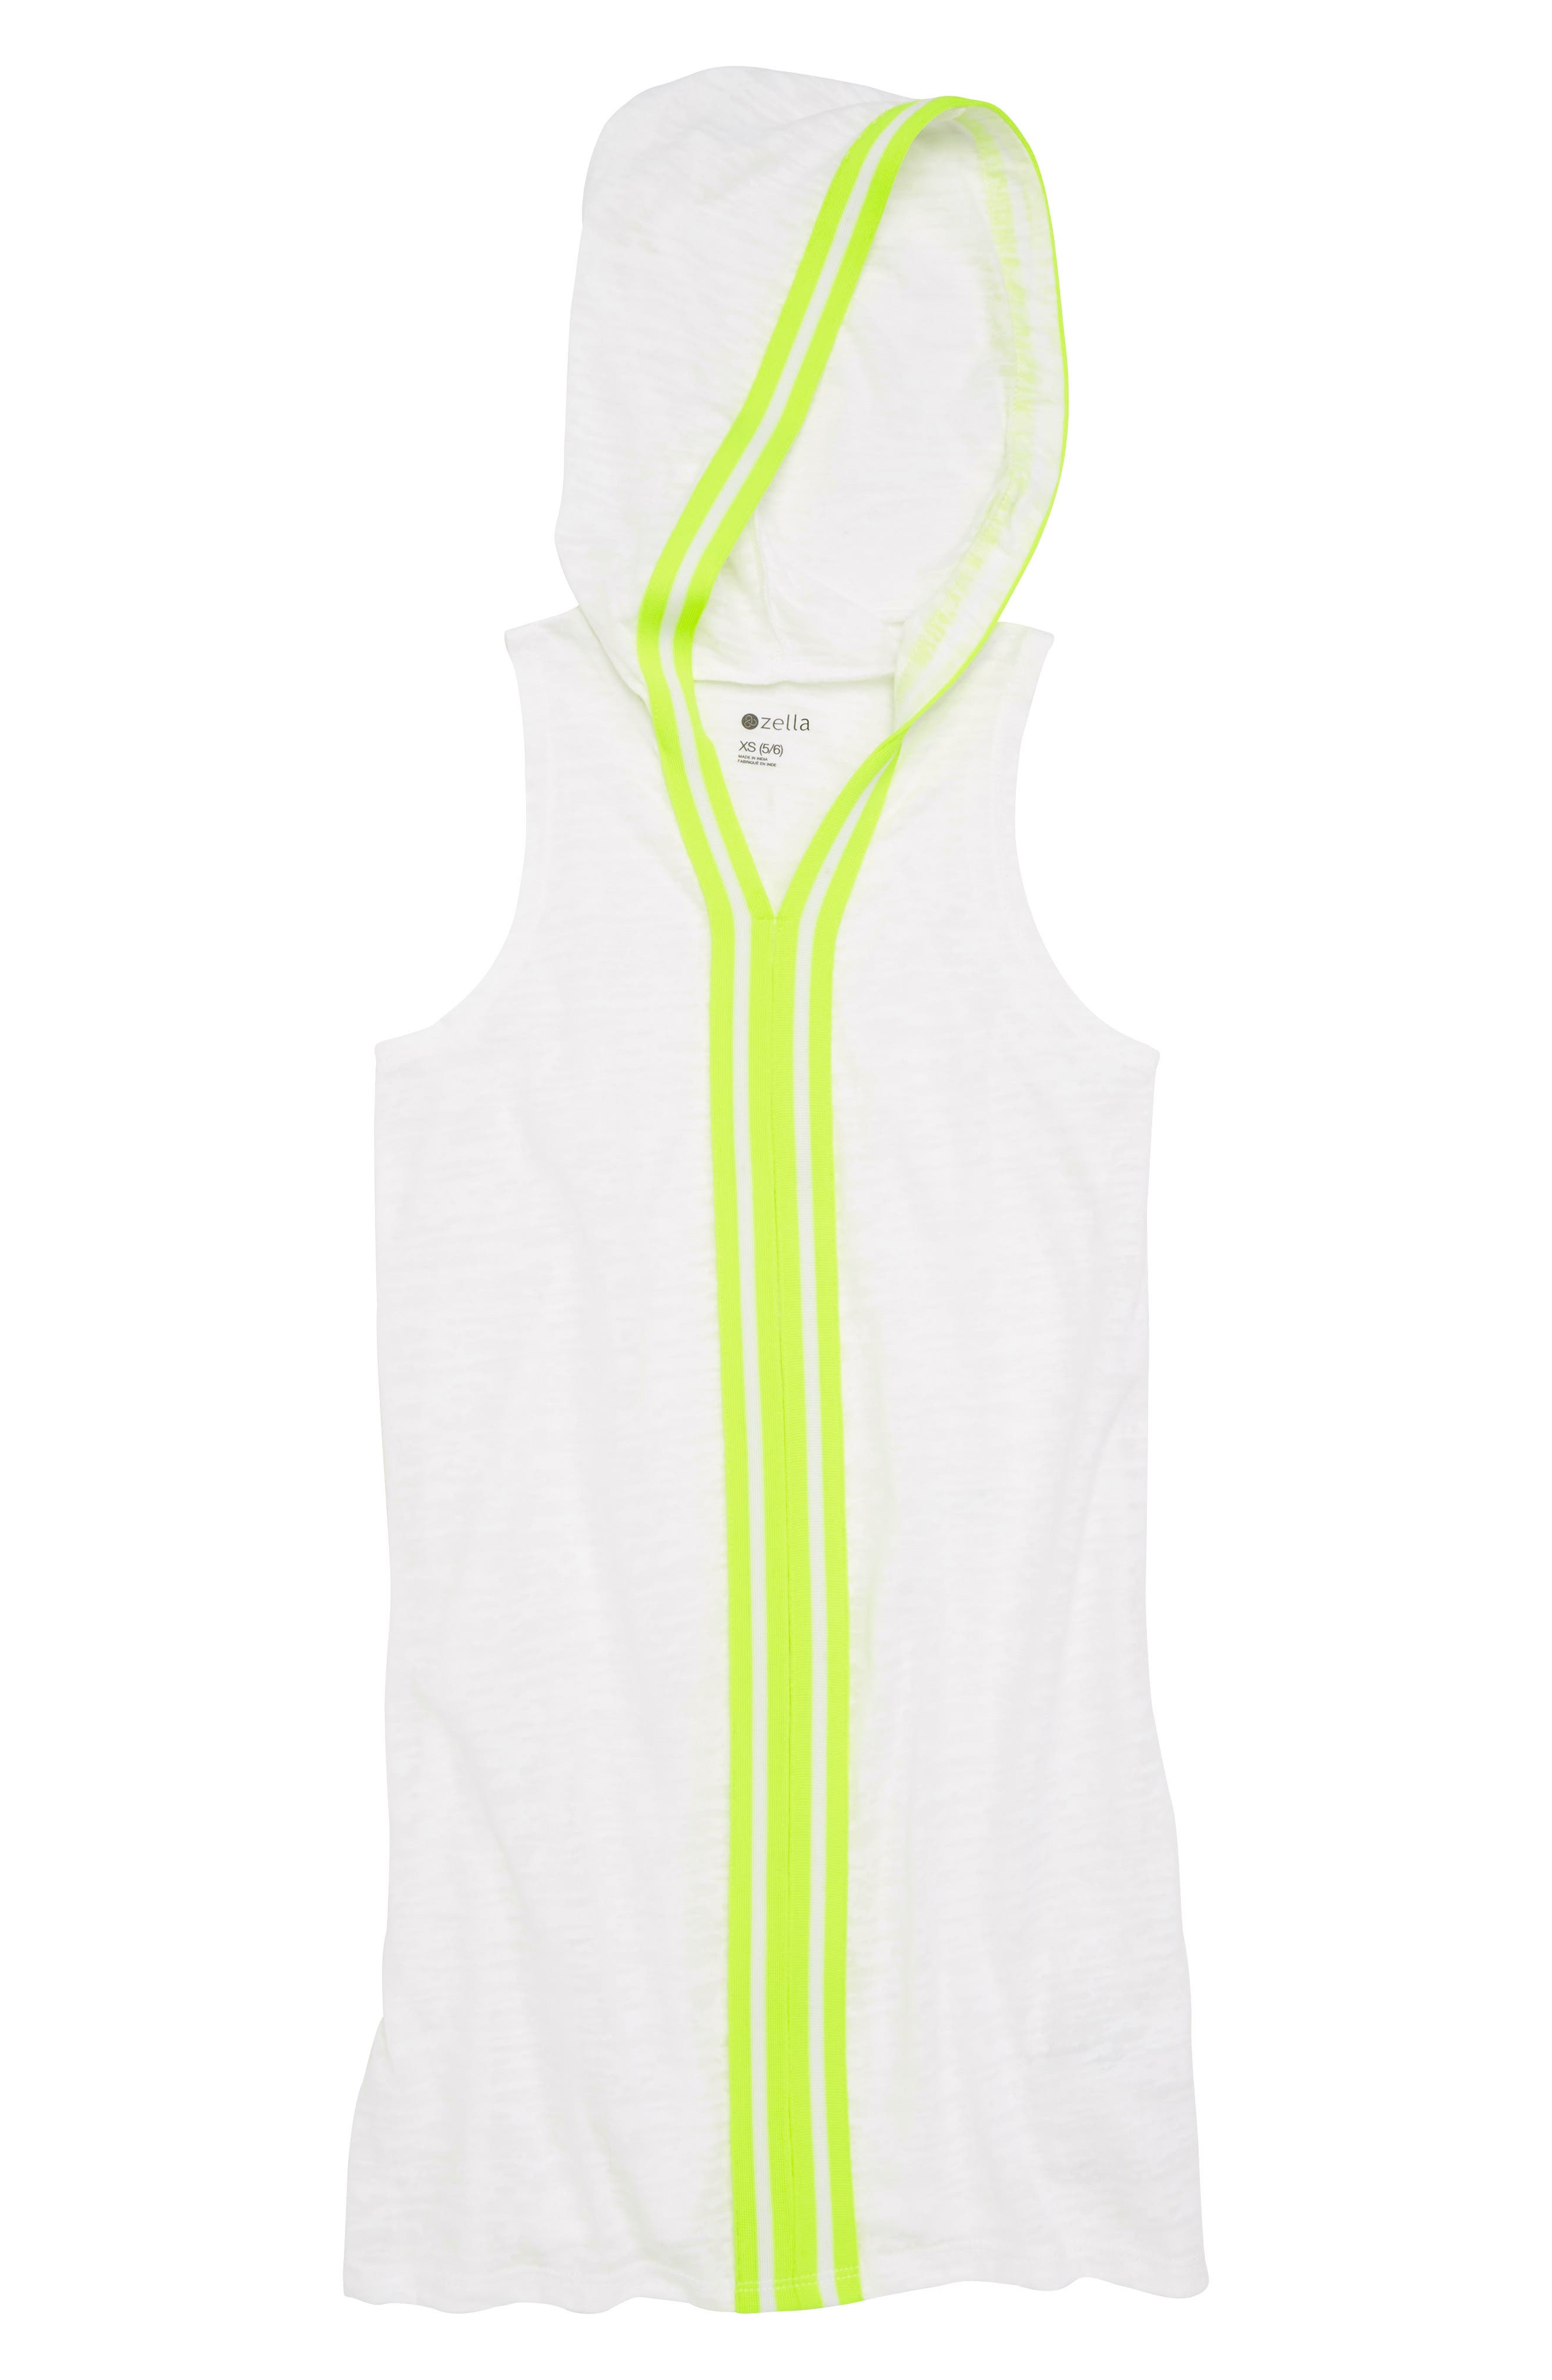 Zella Neon Hooded Cover-Up Dress,                         Main,                         color,